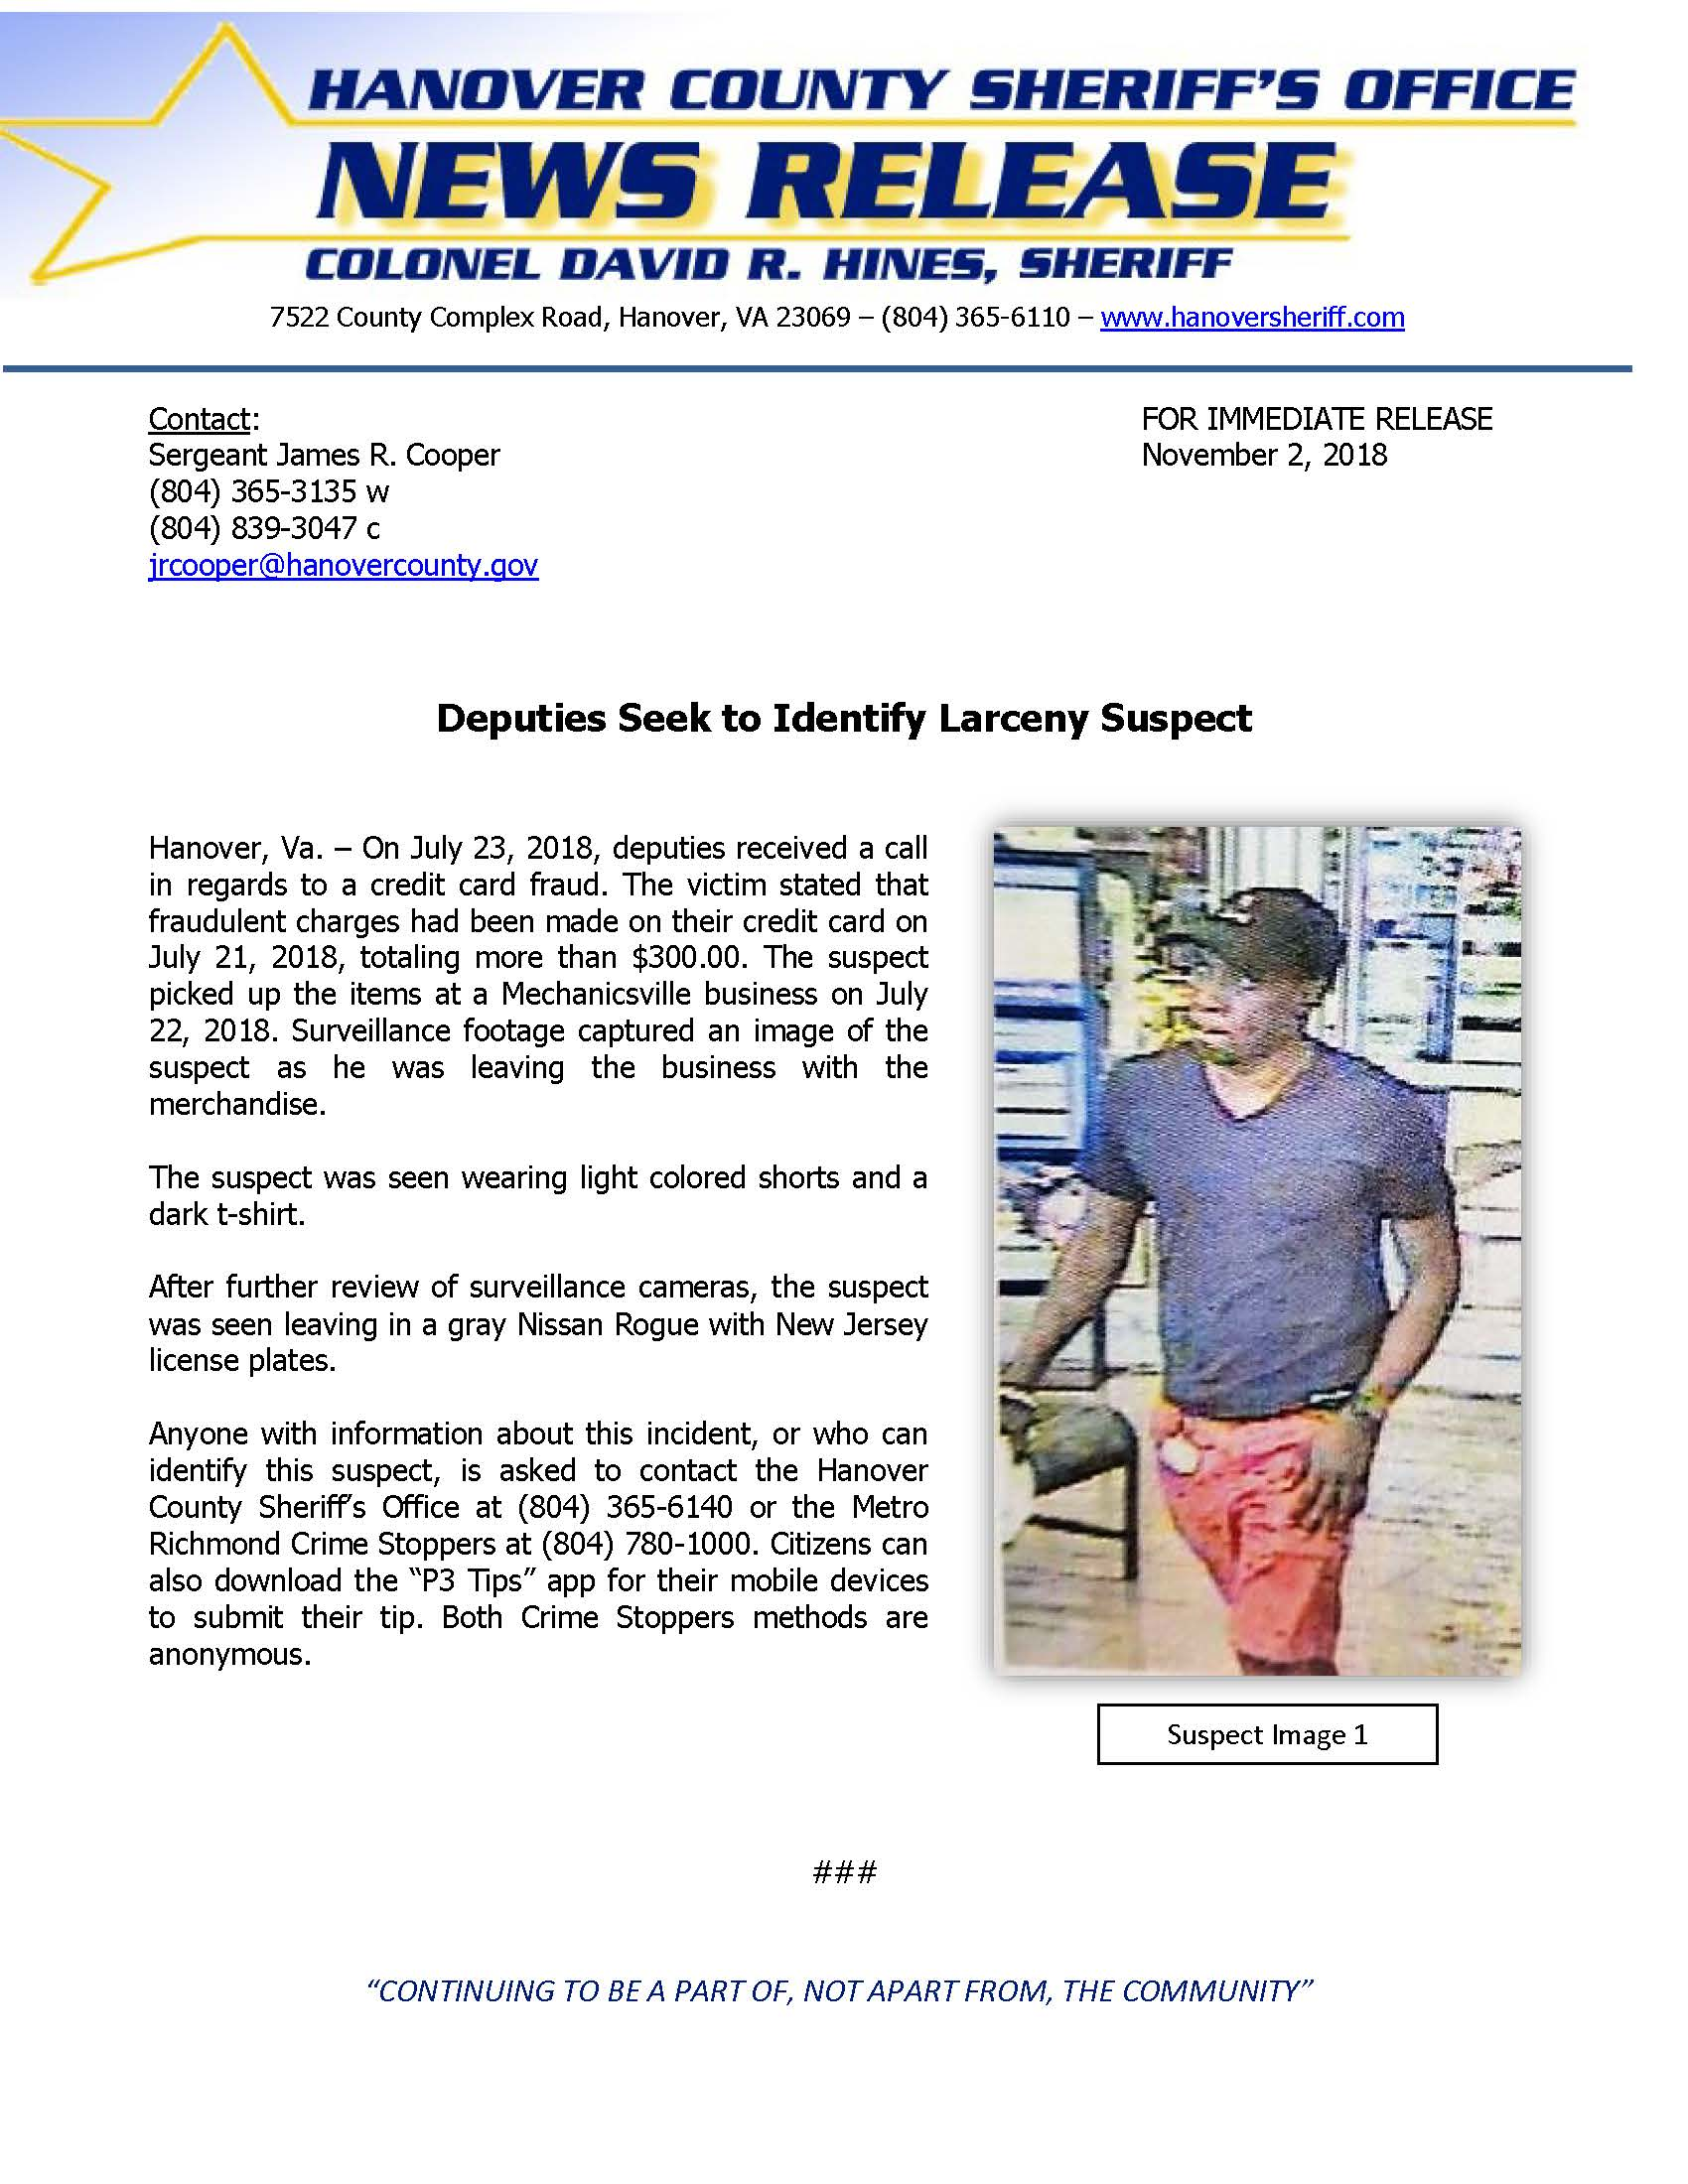 HCSO - Deputies Seek to Identify Larceny Suspect- November 2, 2018